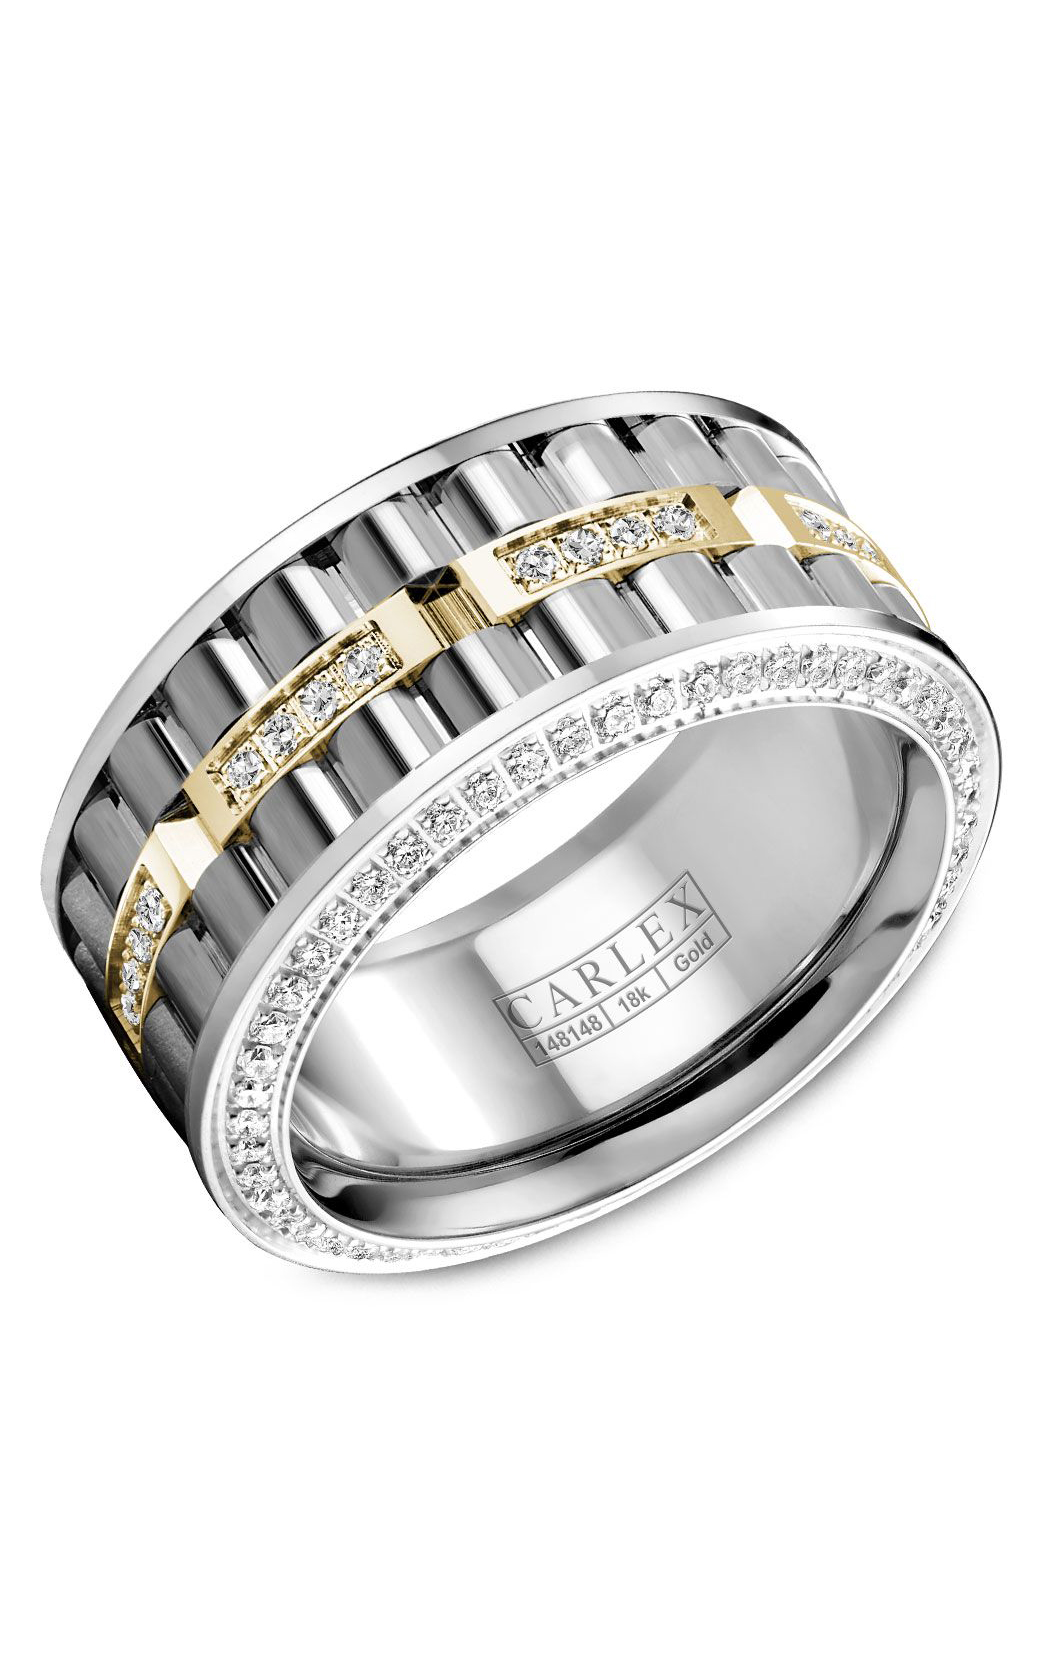 Carlex G3 Men's Wedding Band CX3-0051YWW product image